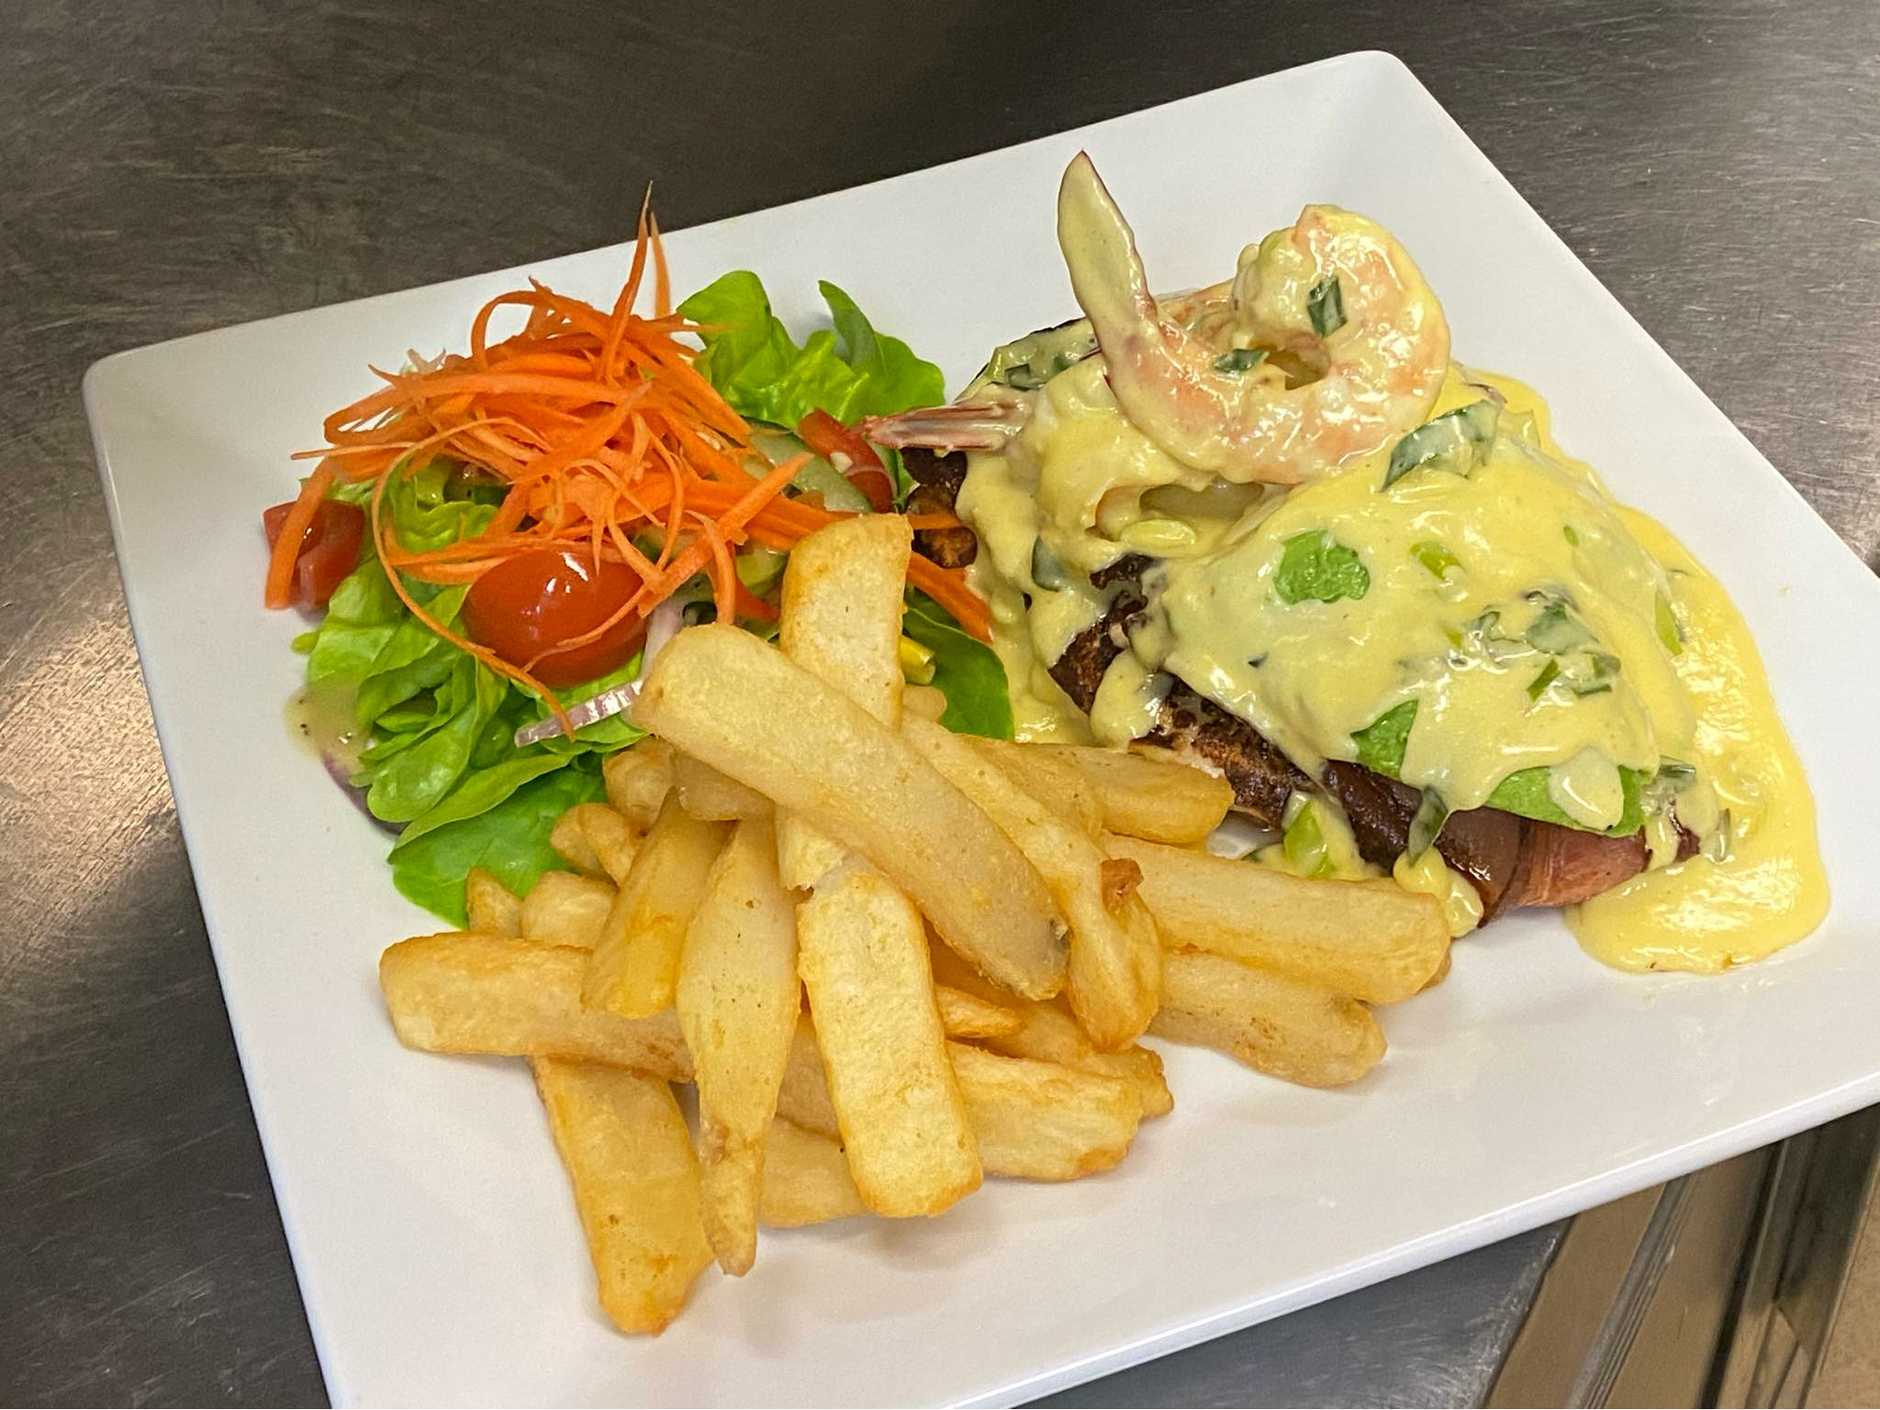 If you're after some pub grub, why not try the chicken bacon prawn and avocado in garlic sauce.